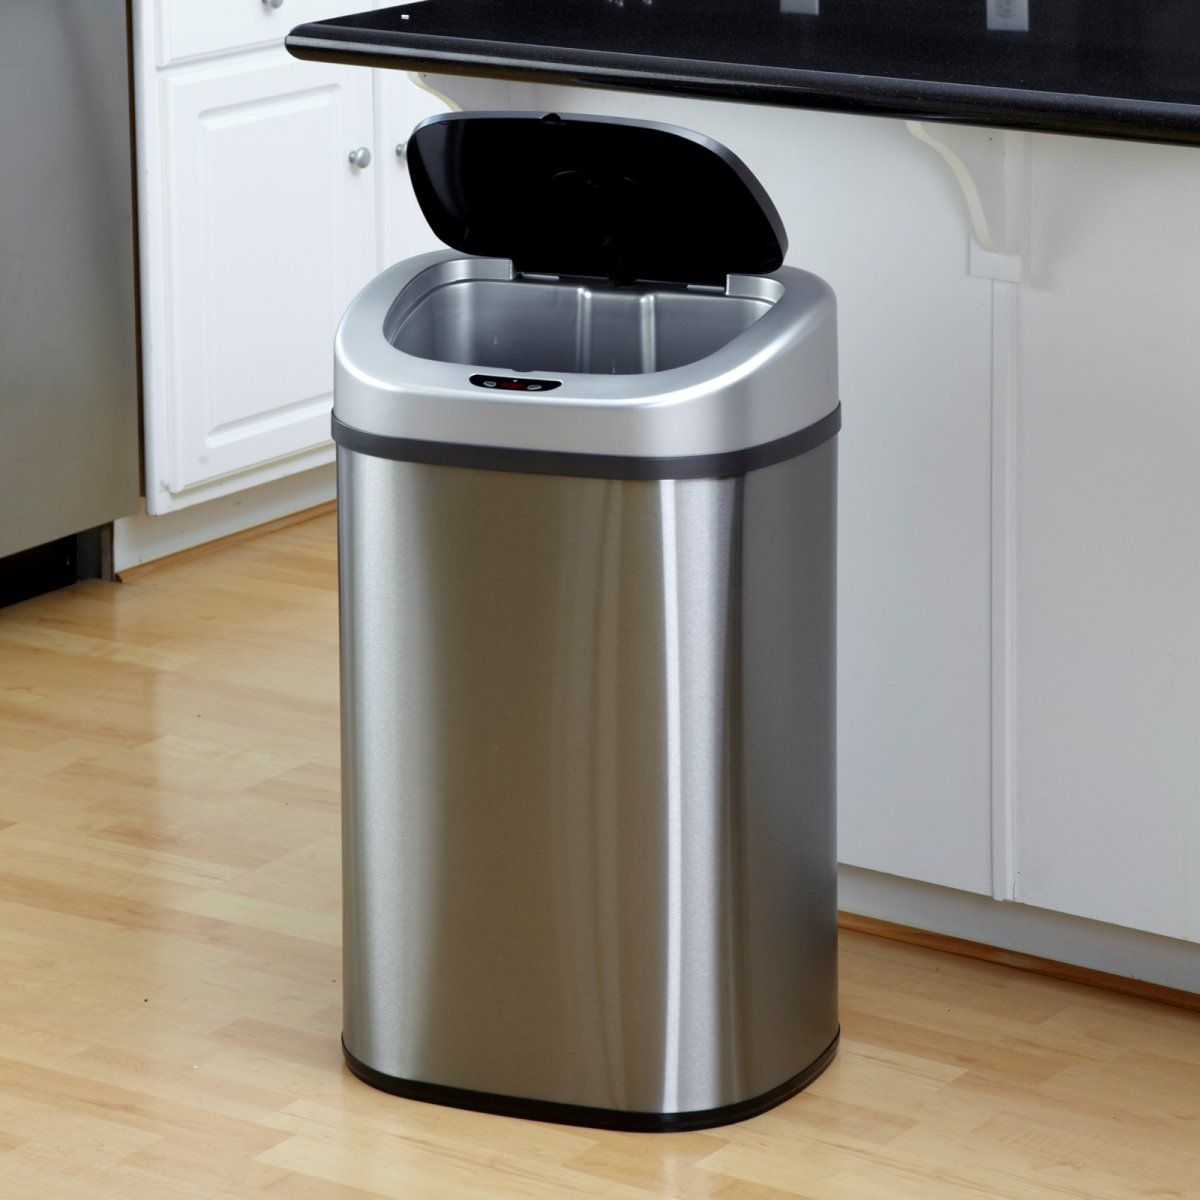 Trash Cans For Kitchen Nine Stars Dzt 80 4 Touchless Stainless Steel 21 1 Gallon